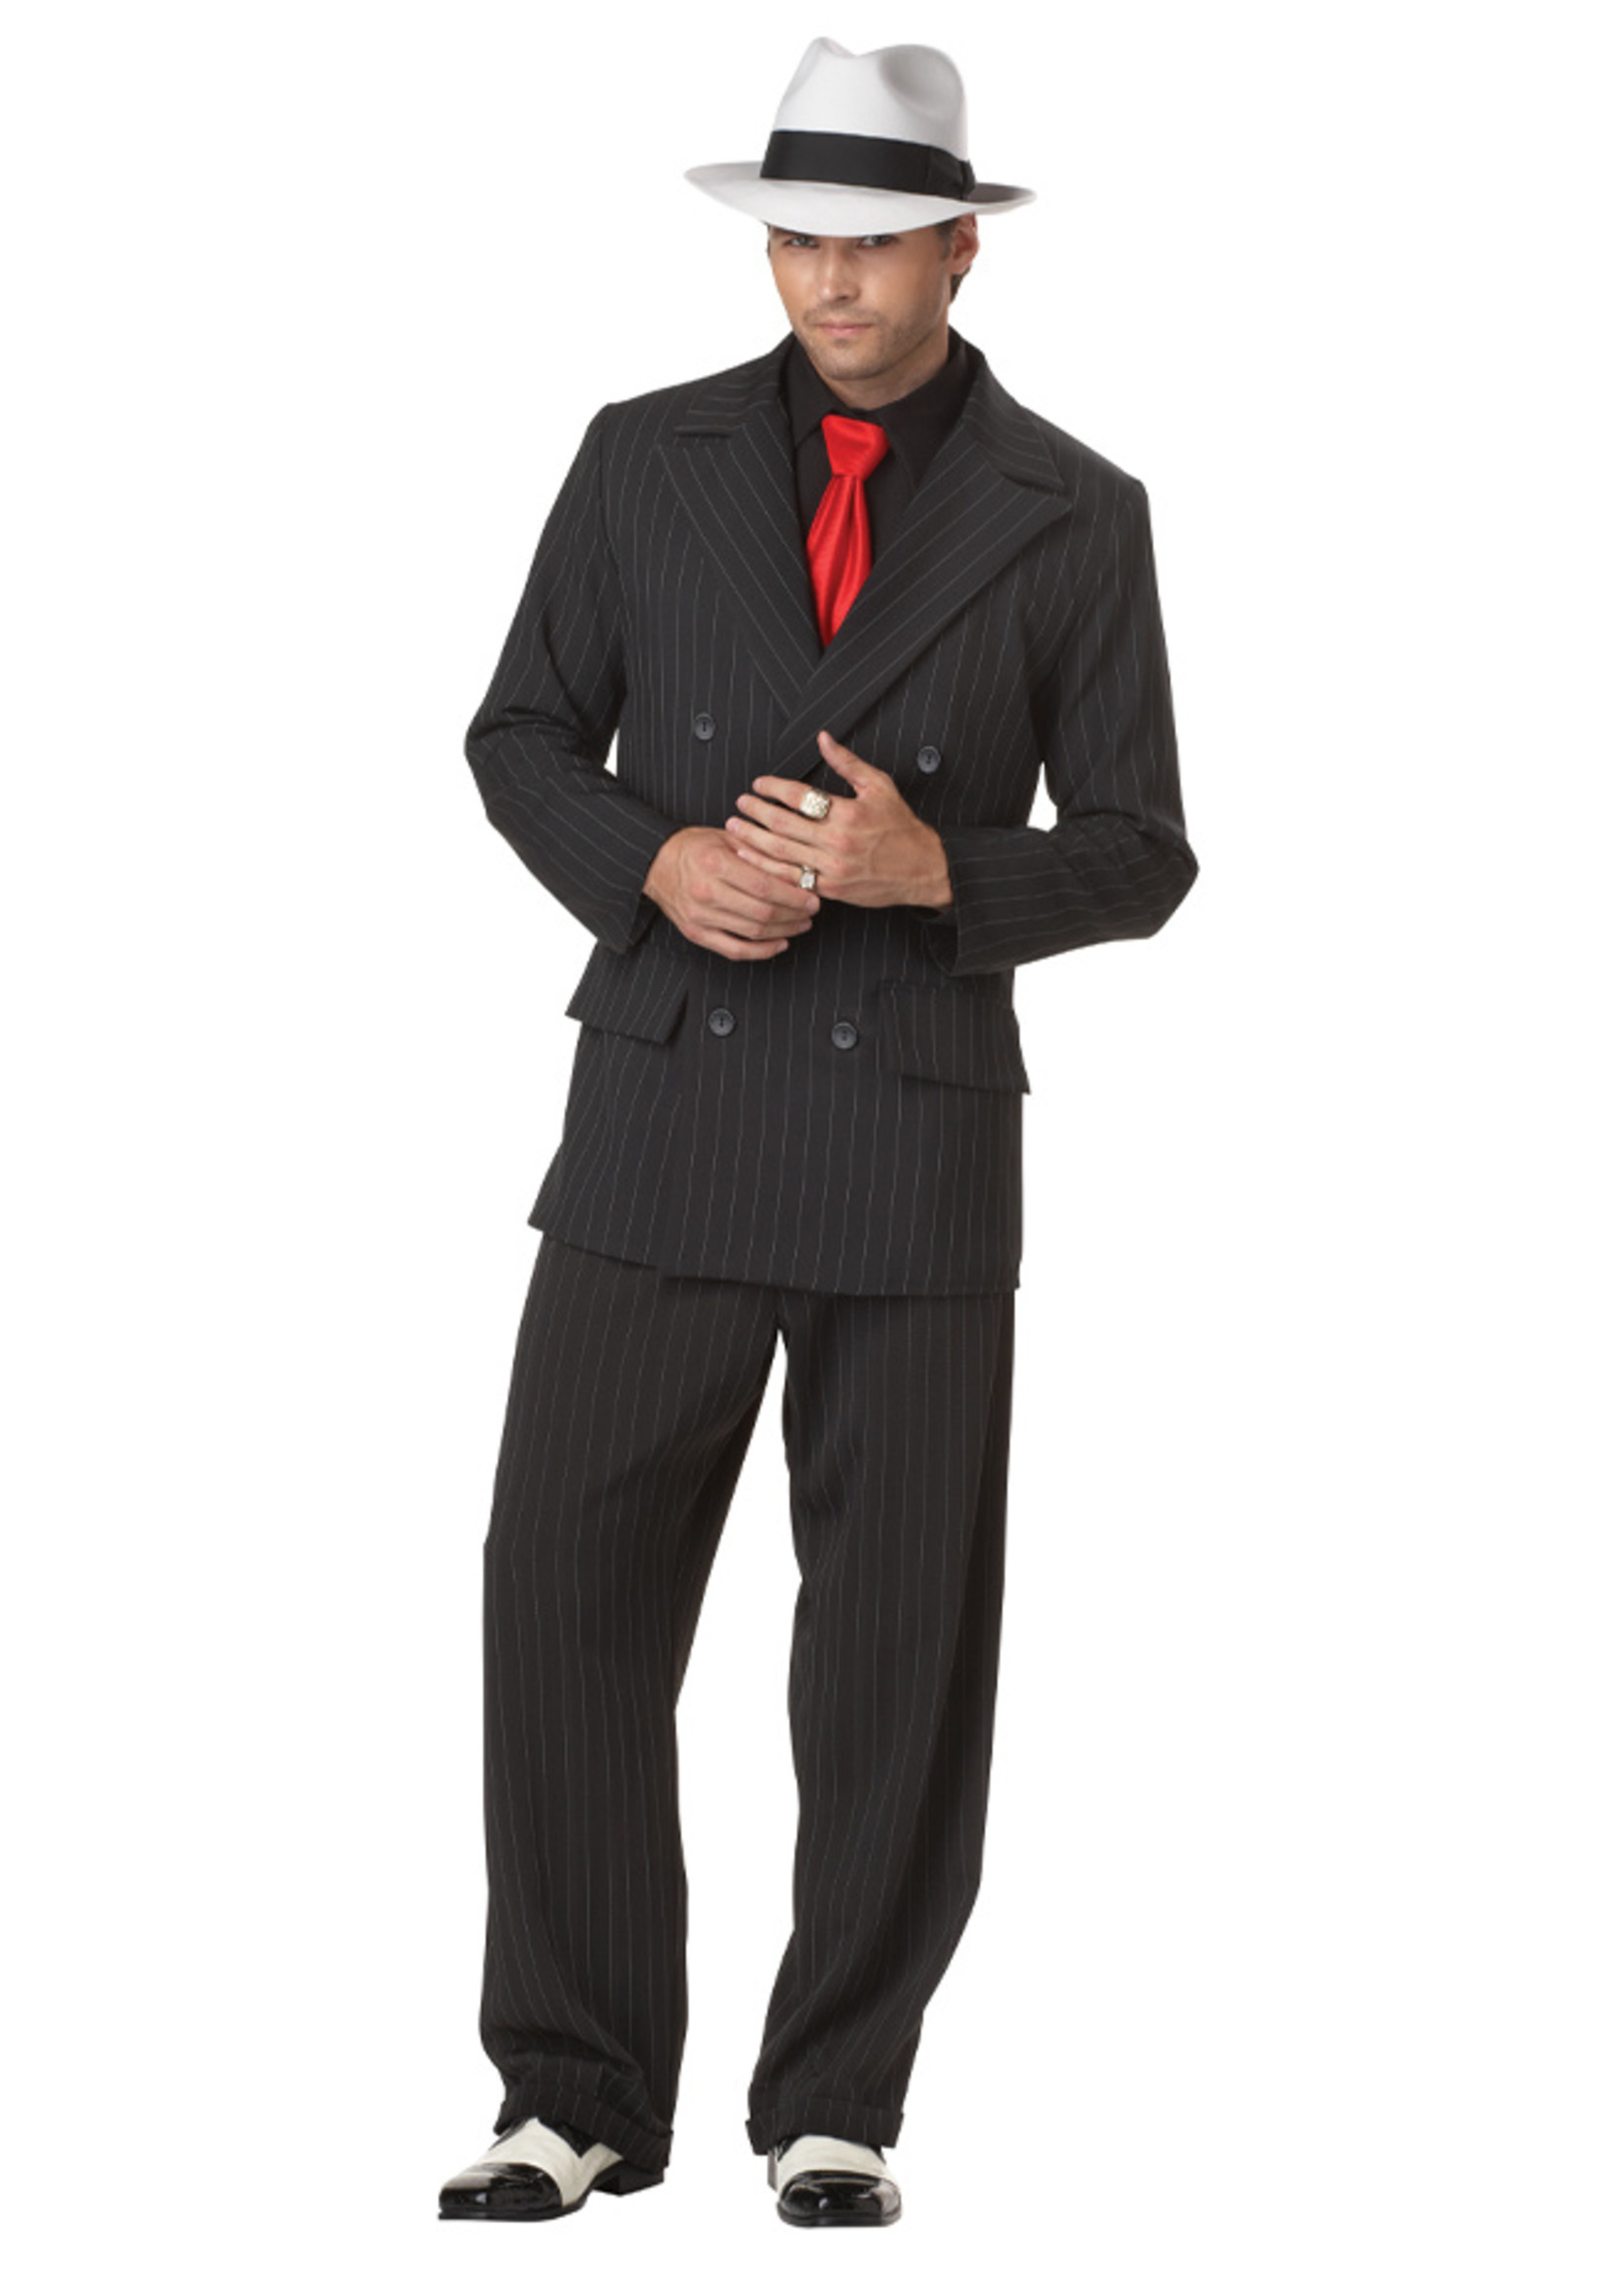 Mob Boss Costume - Men's